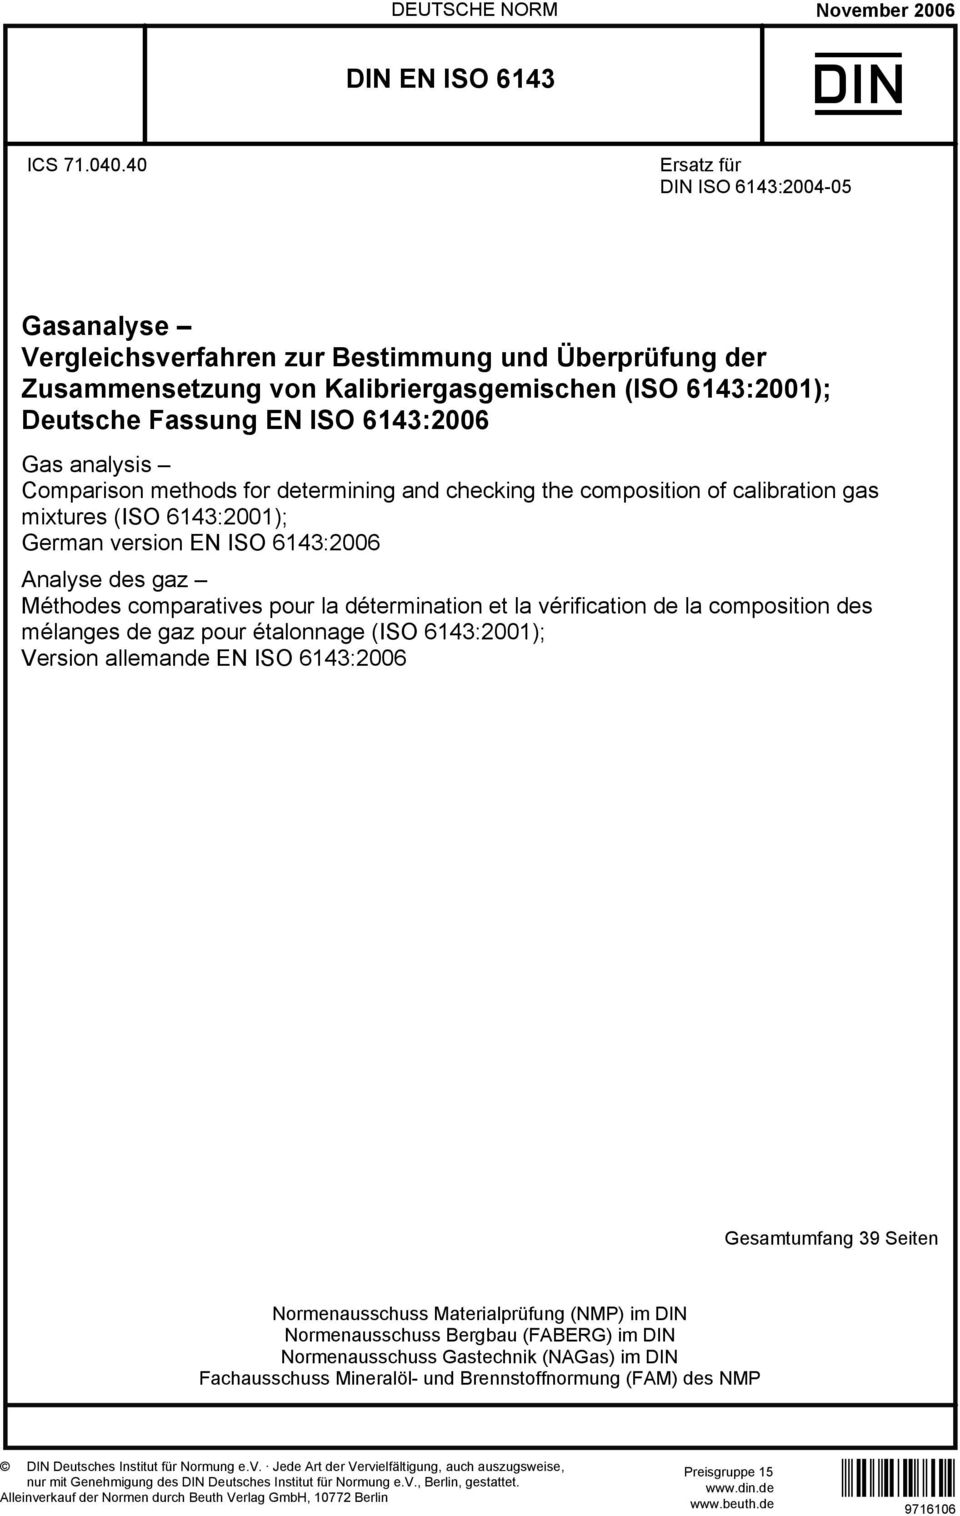 Comparison methods for determining and checking the composition of calibration gas mixtures ; German version EN ISO 6143:2006 Analyse des gaz Méthodes comparatives pour la détermination et la